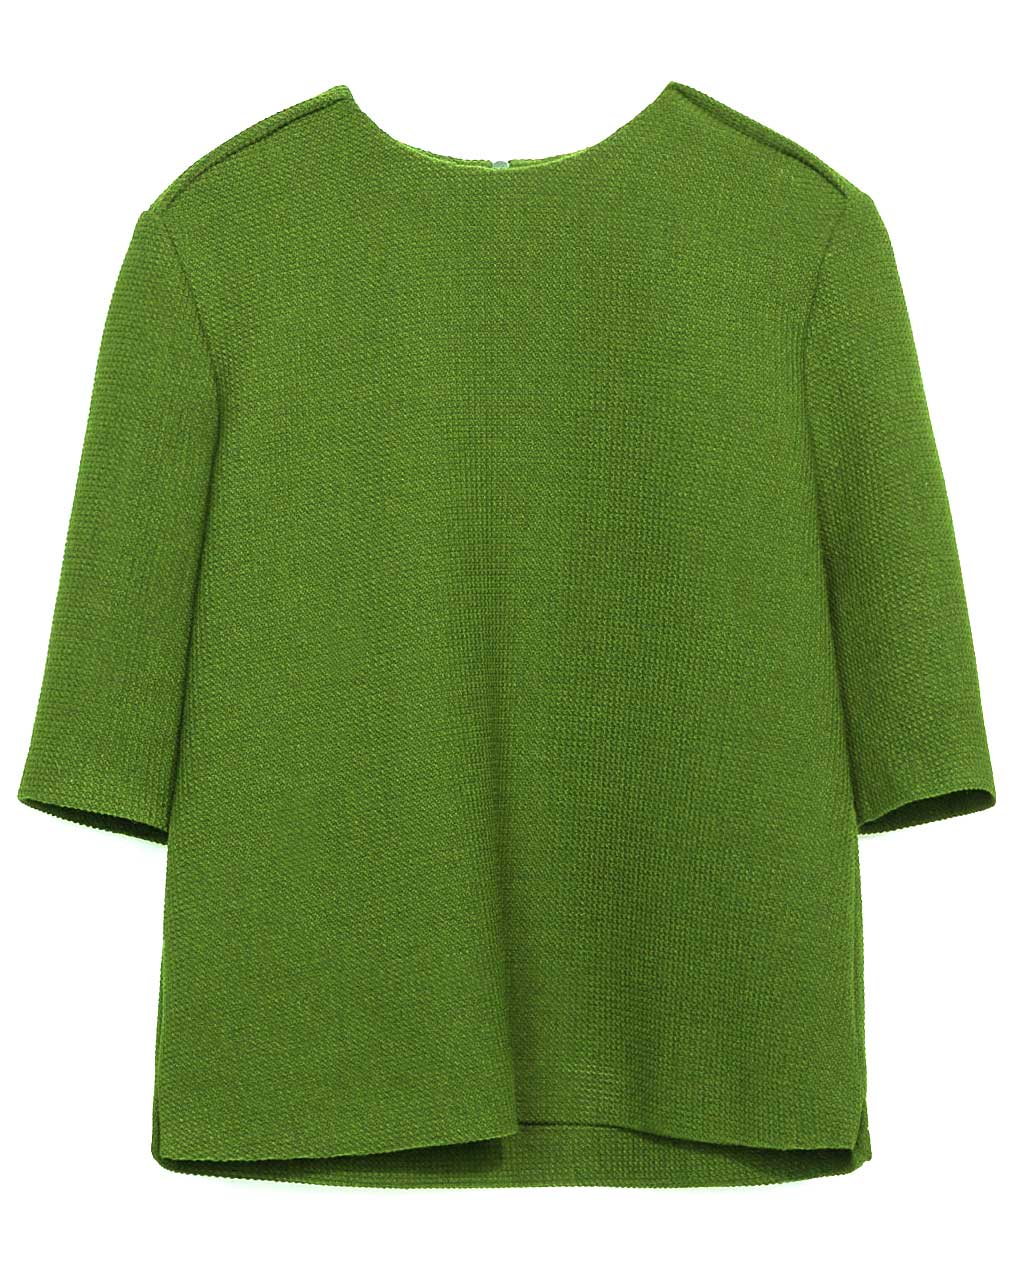 Fairly Made Pinnie Shell Top, £78, xxxx. www.fashion-conscience.com Availability: In stock £58.00